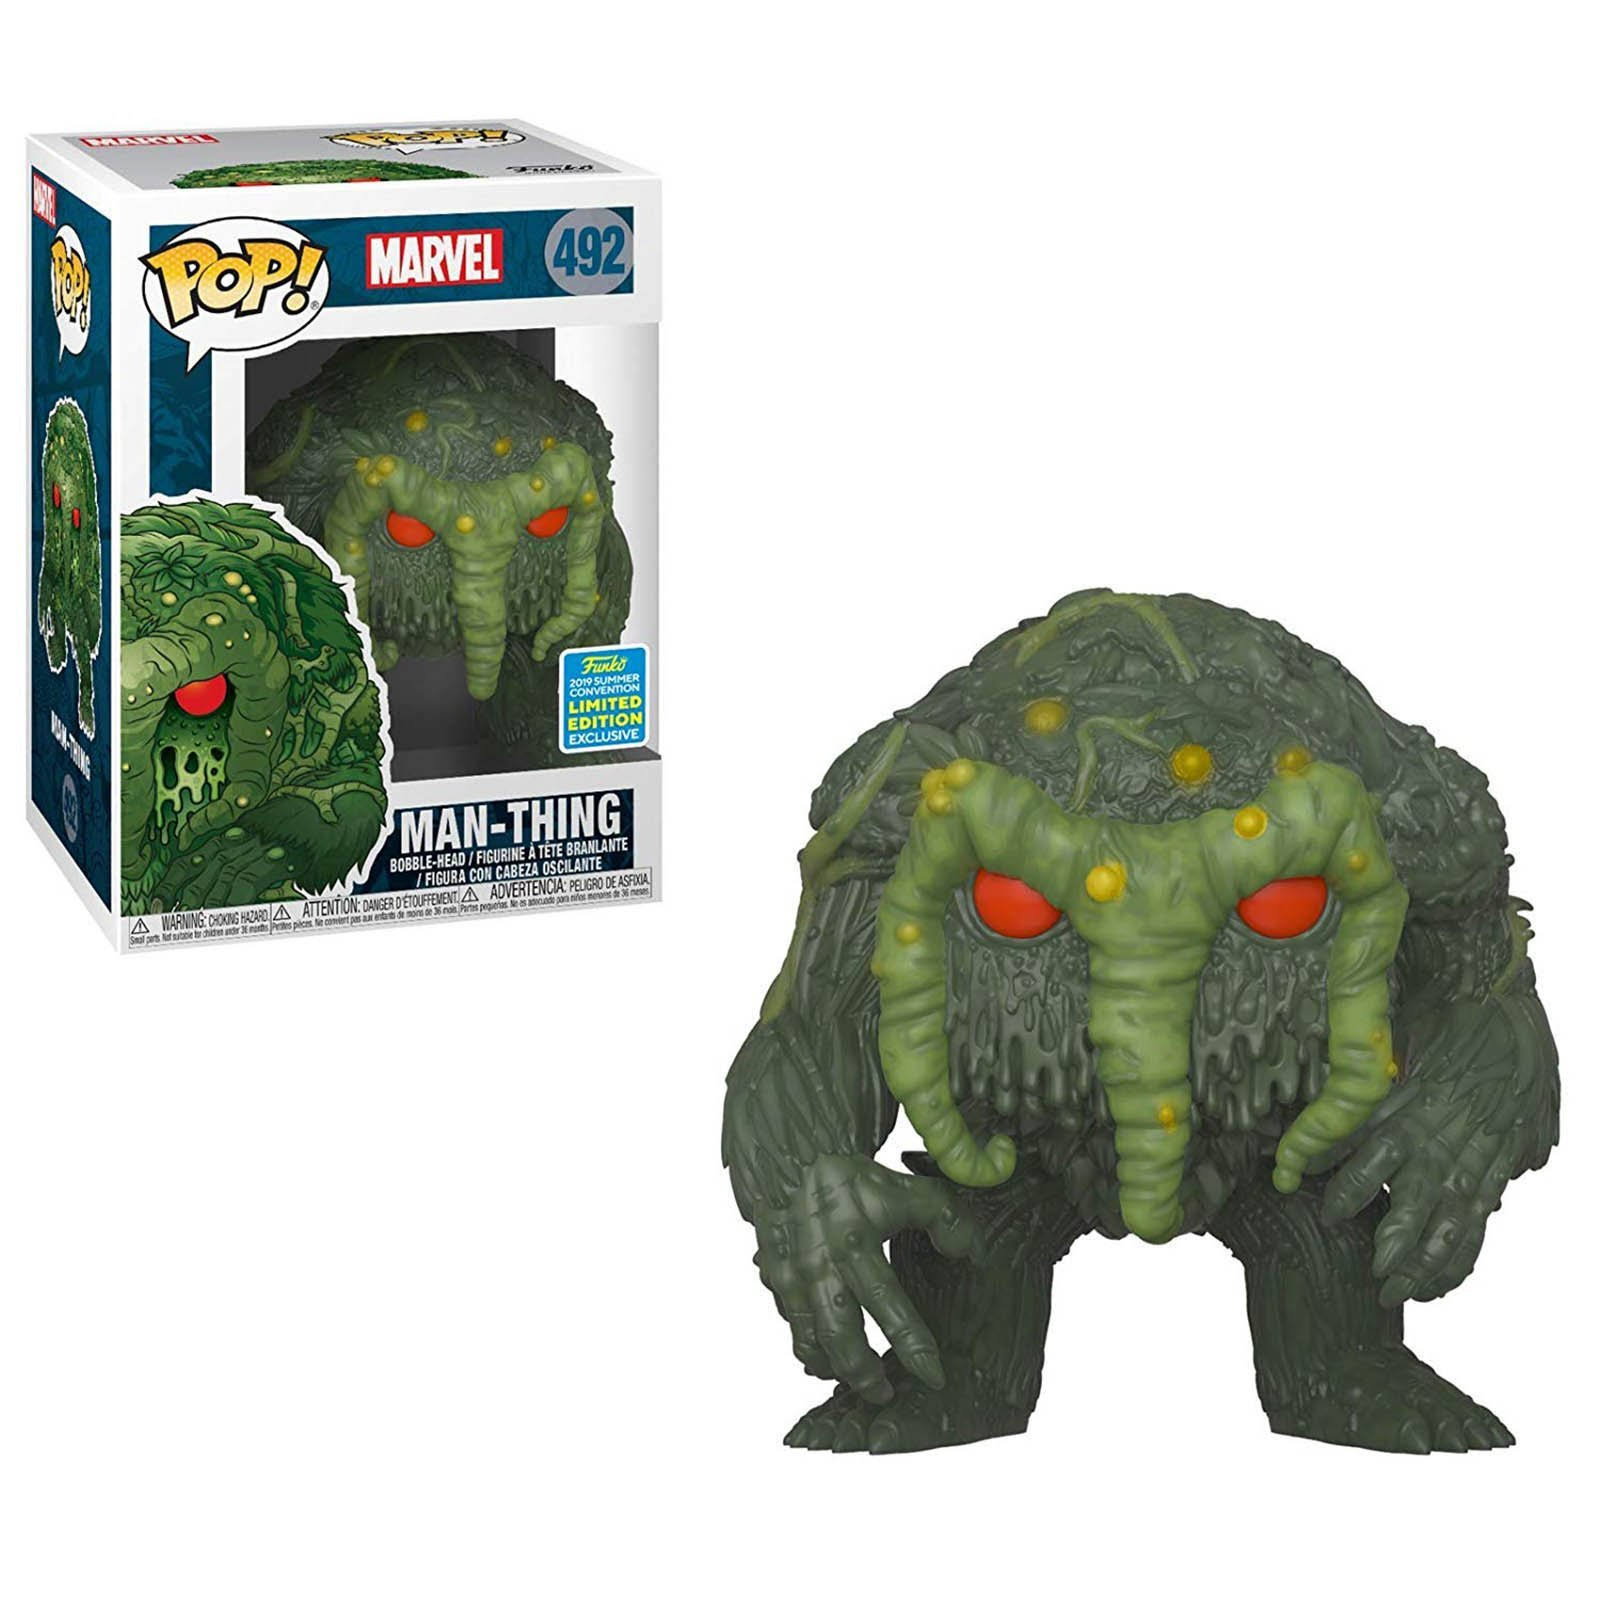 Funko Pop! Marvel Vinyl Figure - Man-thing